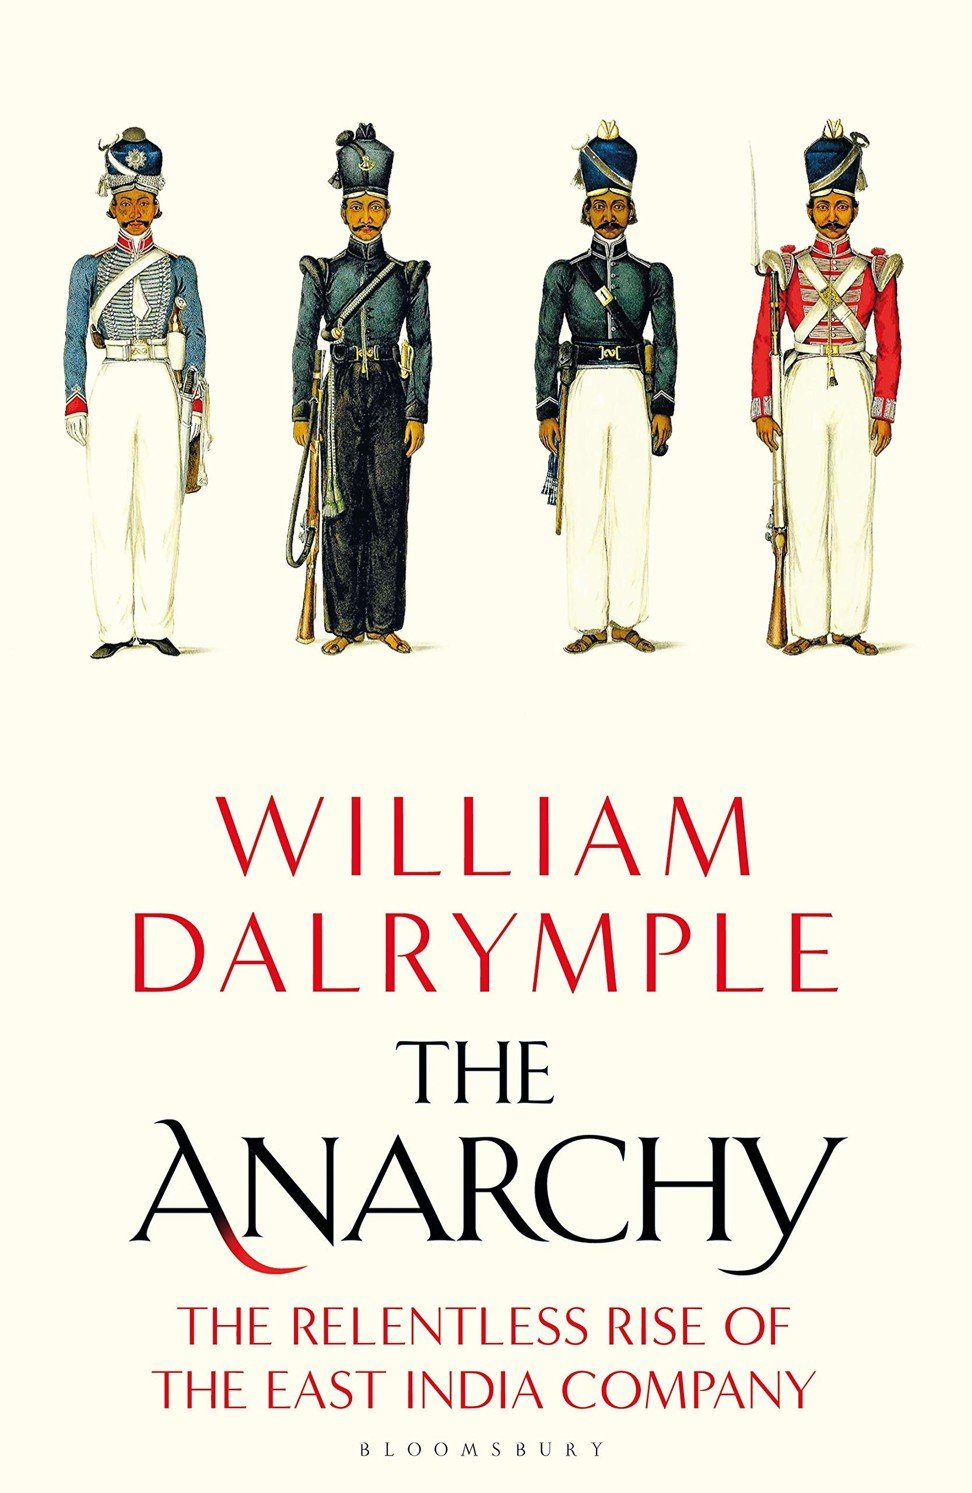 The Anarchy: how the East India Company looted India, and became too big to fail, explored by William Dalrymple